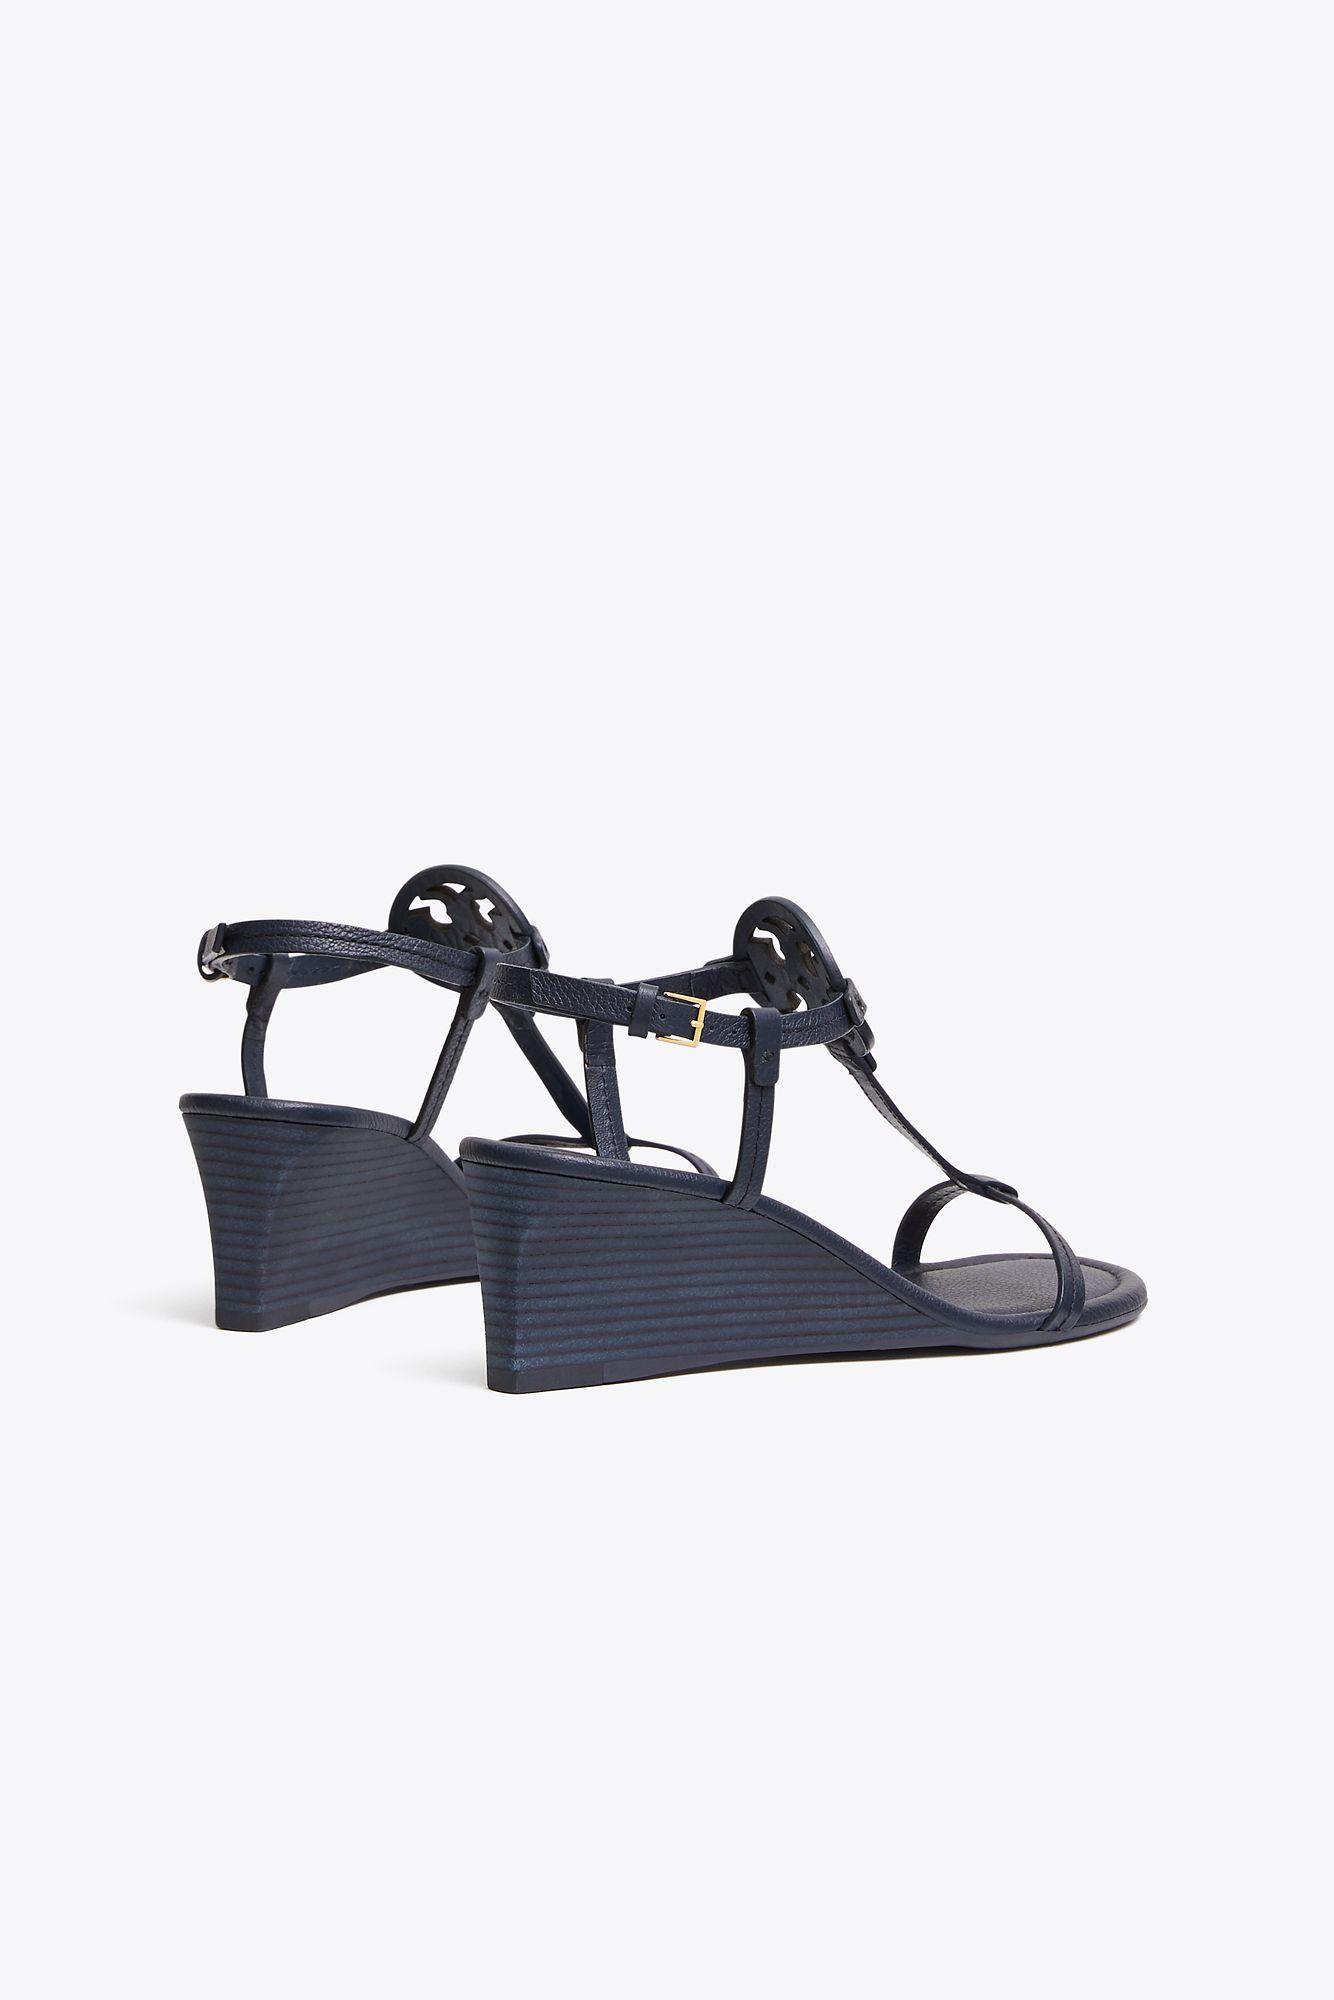 ba02a7773 Tory Burch Miller Sandal Wedges, Tumbled Leather in Blue - Lyst